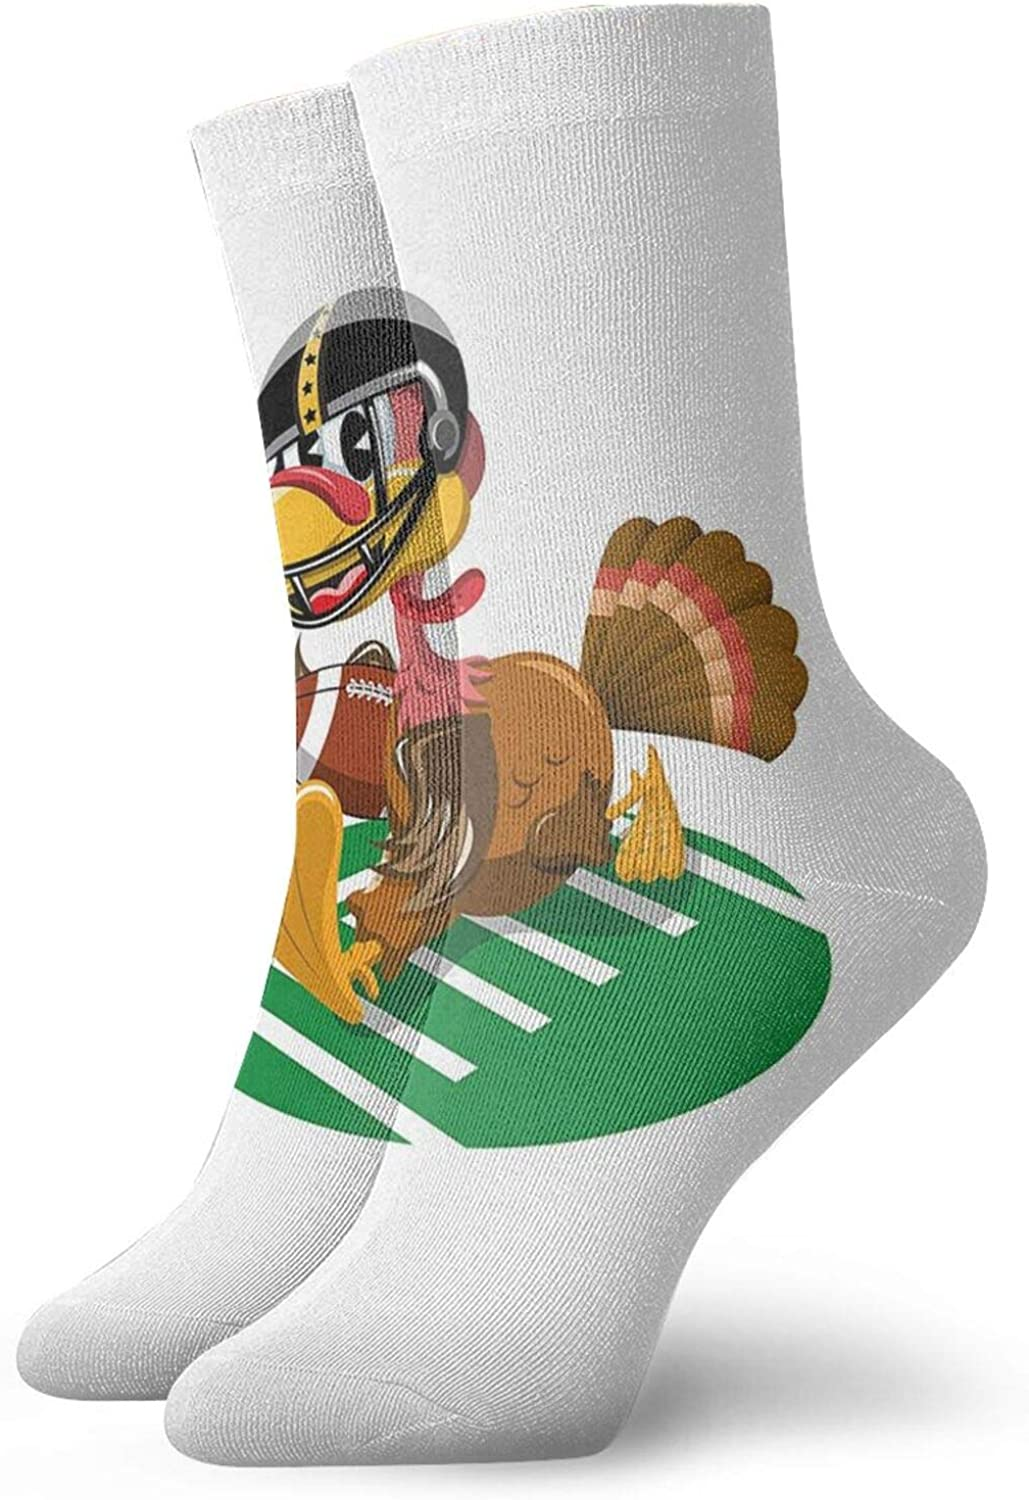 Compression High Socks-American Football Playing Funny Bird And Thanksgiving Day Celebrations Theme Pigskin Best for Running,Athletic,Hiking,Travel,Flight